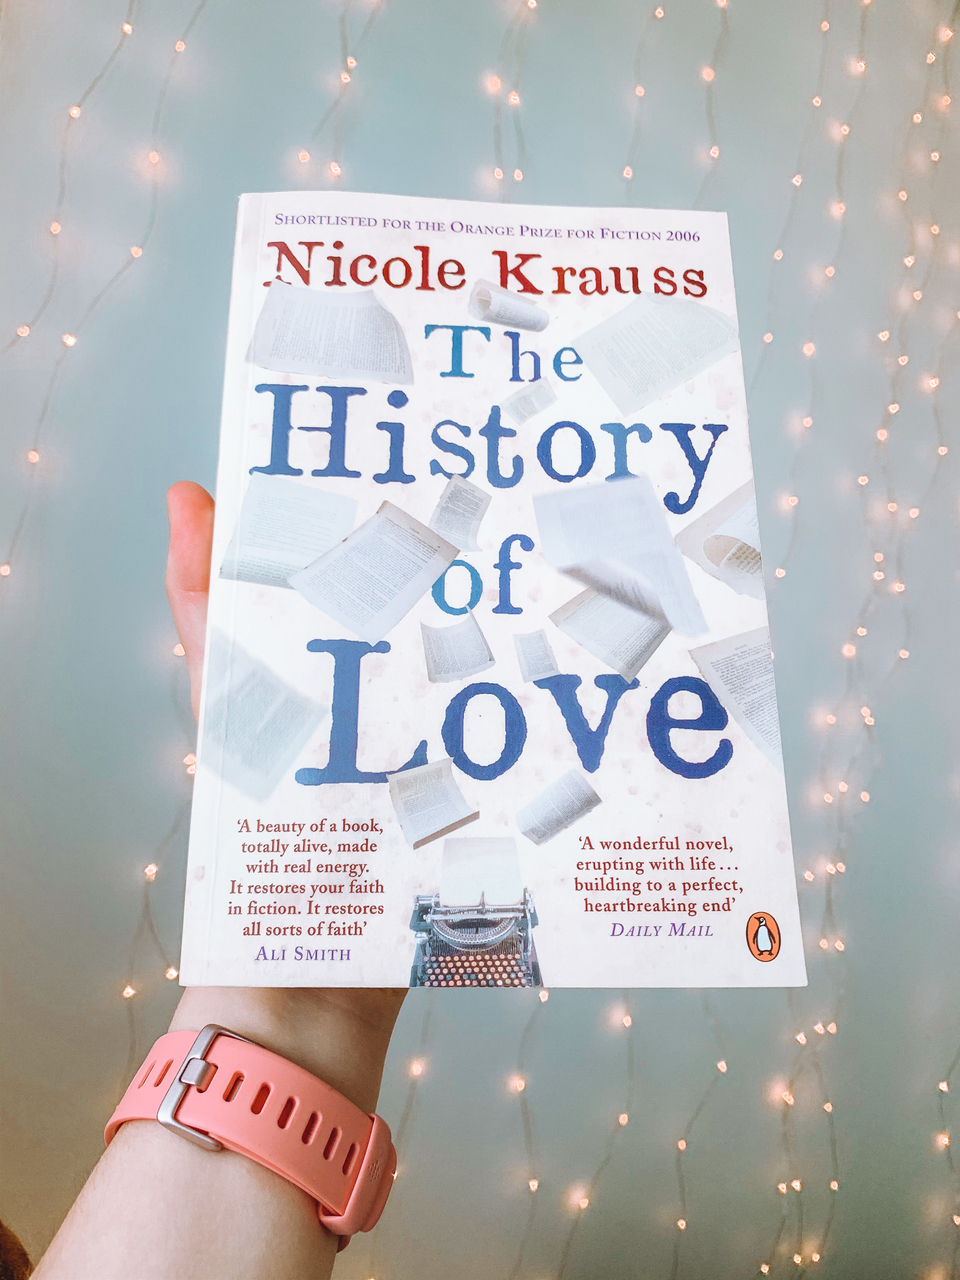 The history of Love by Nicole Krauss book front cover